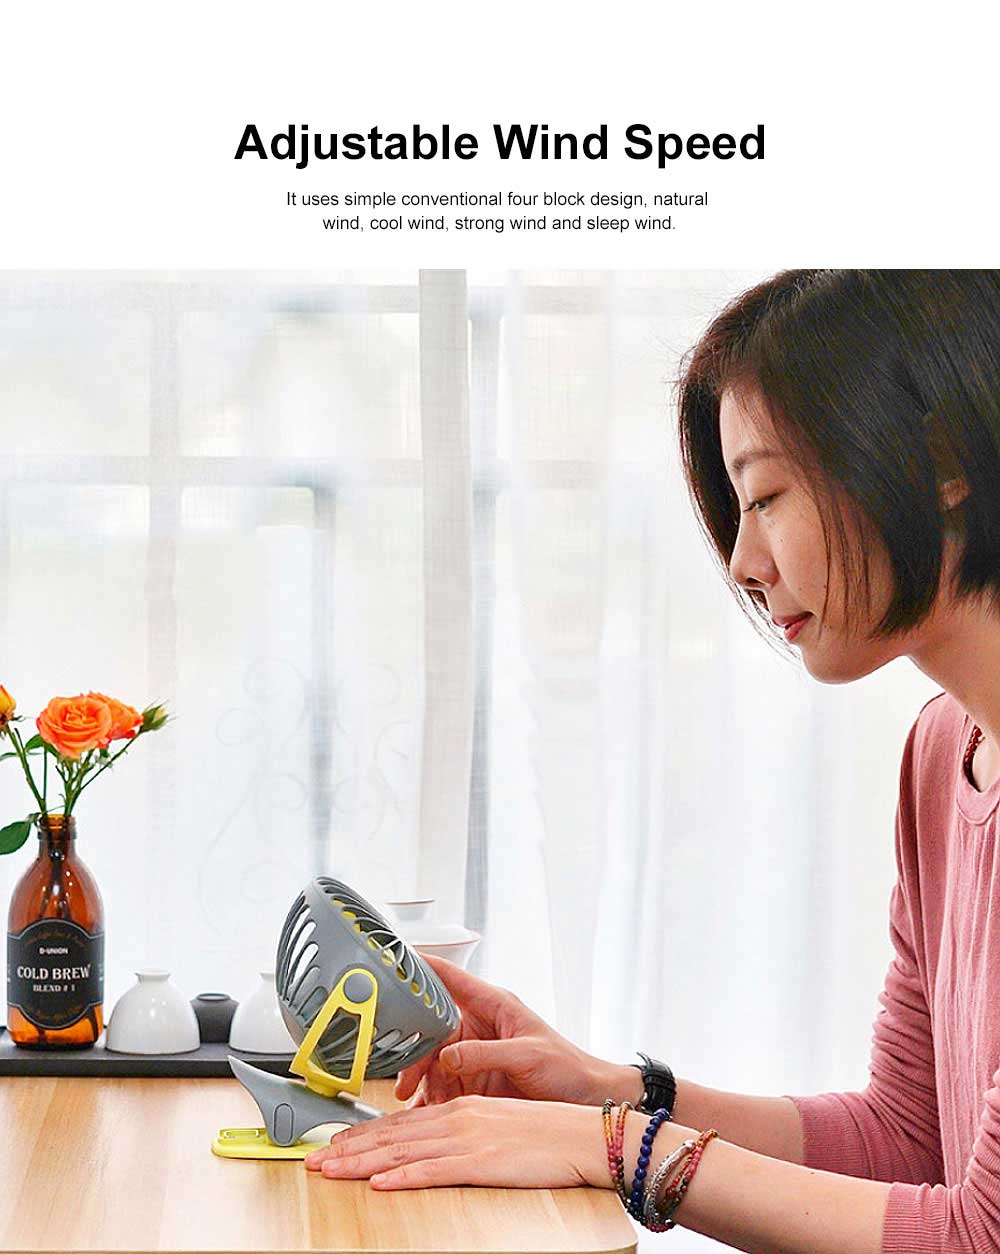 USB Rechargeable Desk Fan, Portable USB Fan with ABS and Silicone Material, Convenient Clip Design 4